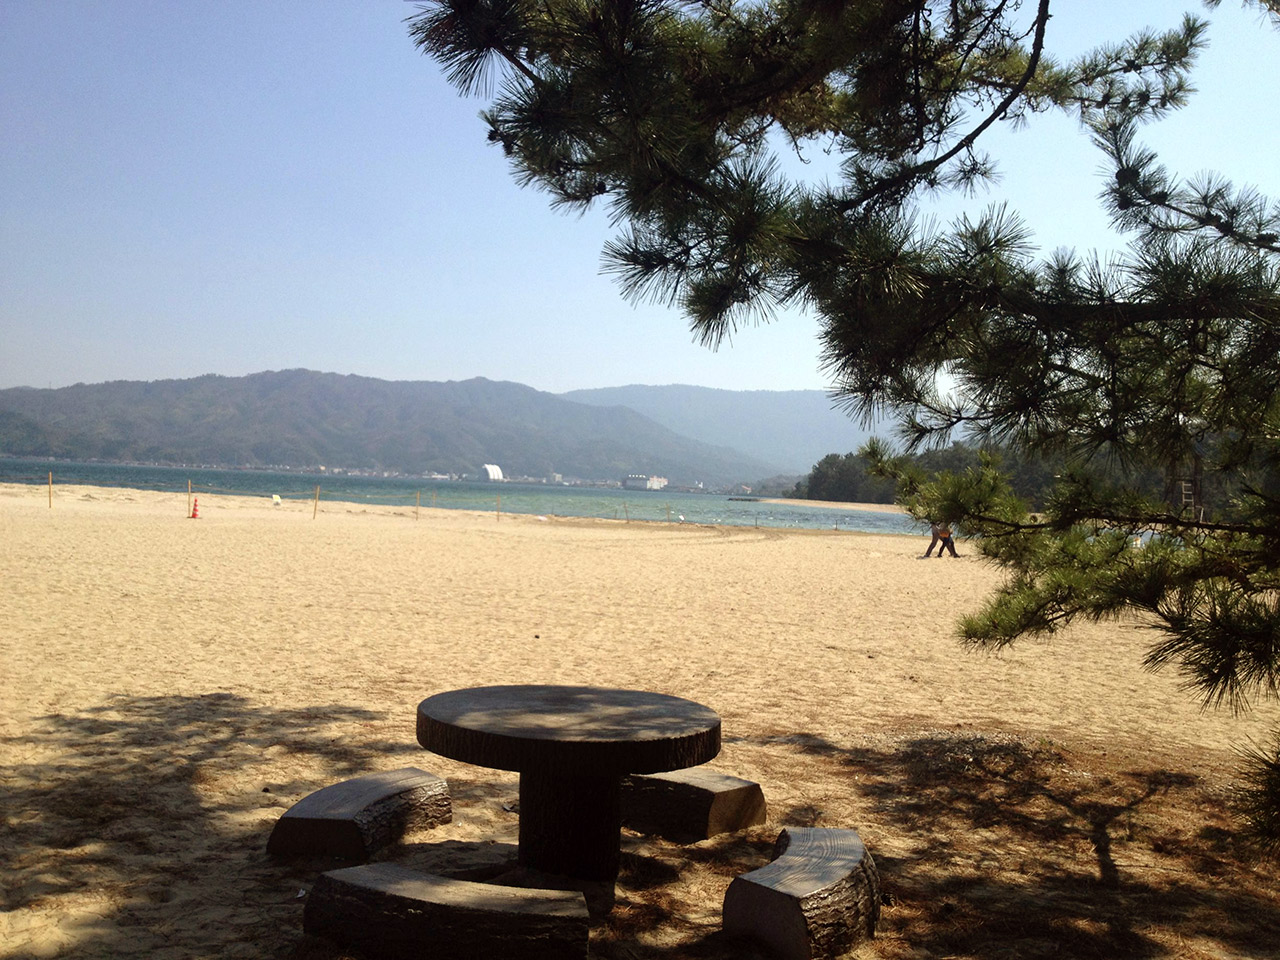 round concrete table at a beach pine trees